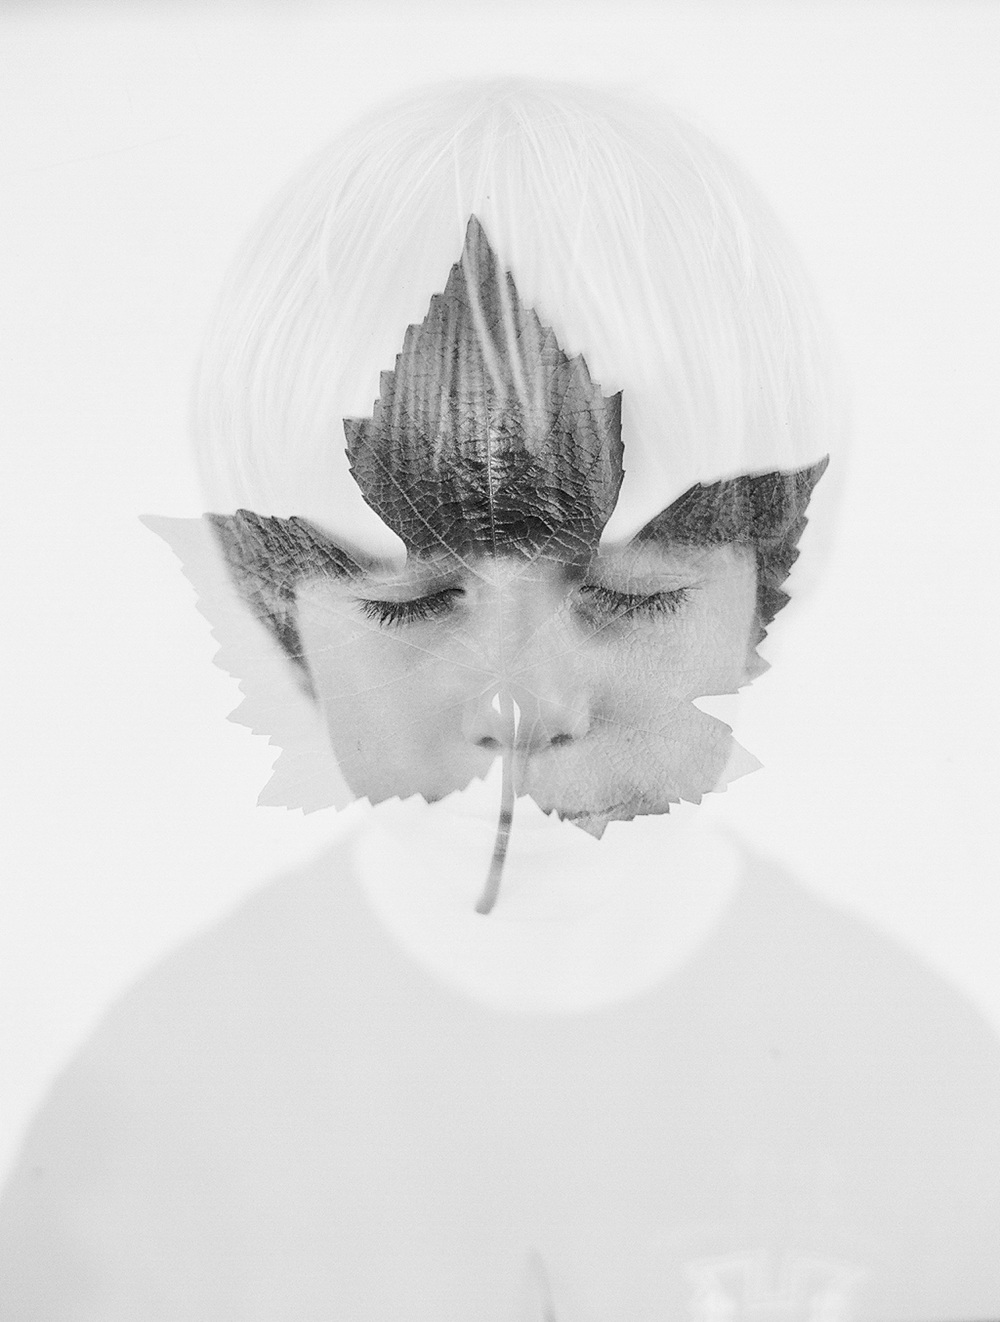 portland oregon film photographer Lexia Frank, photographs her son in black and white film double exposed with a leaf for a fine art image of her child